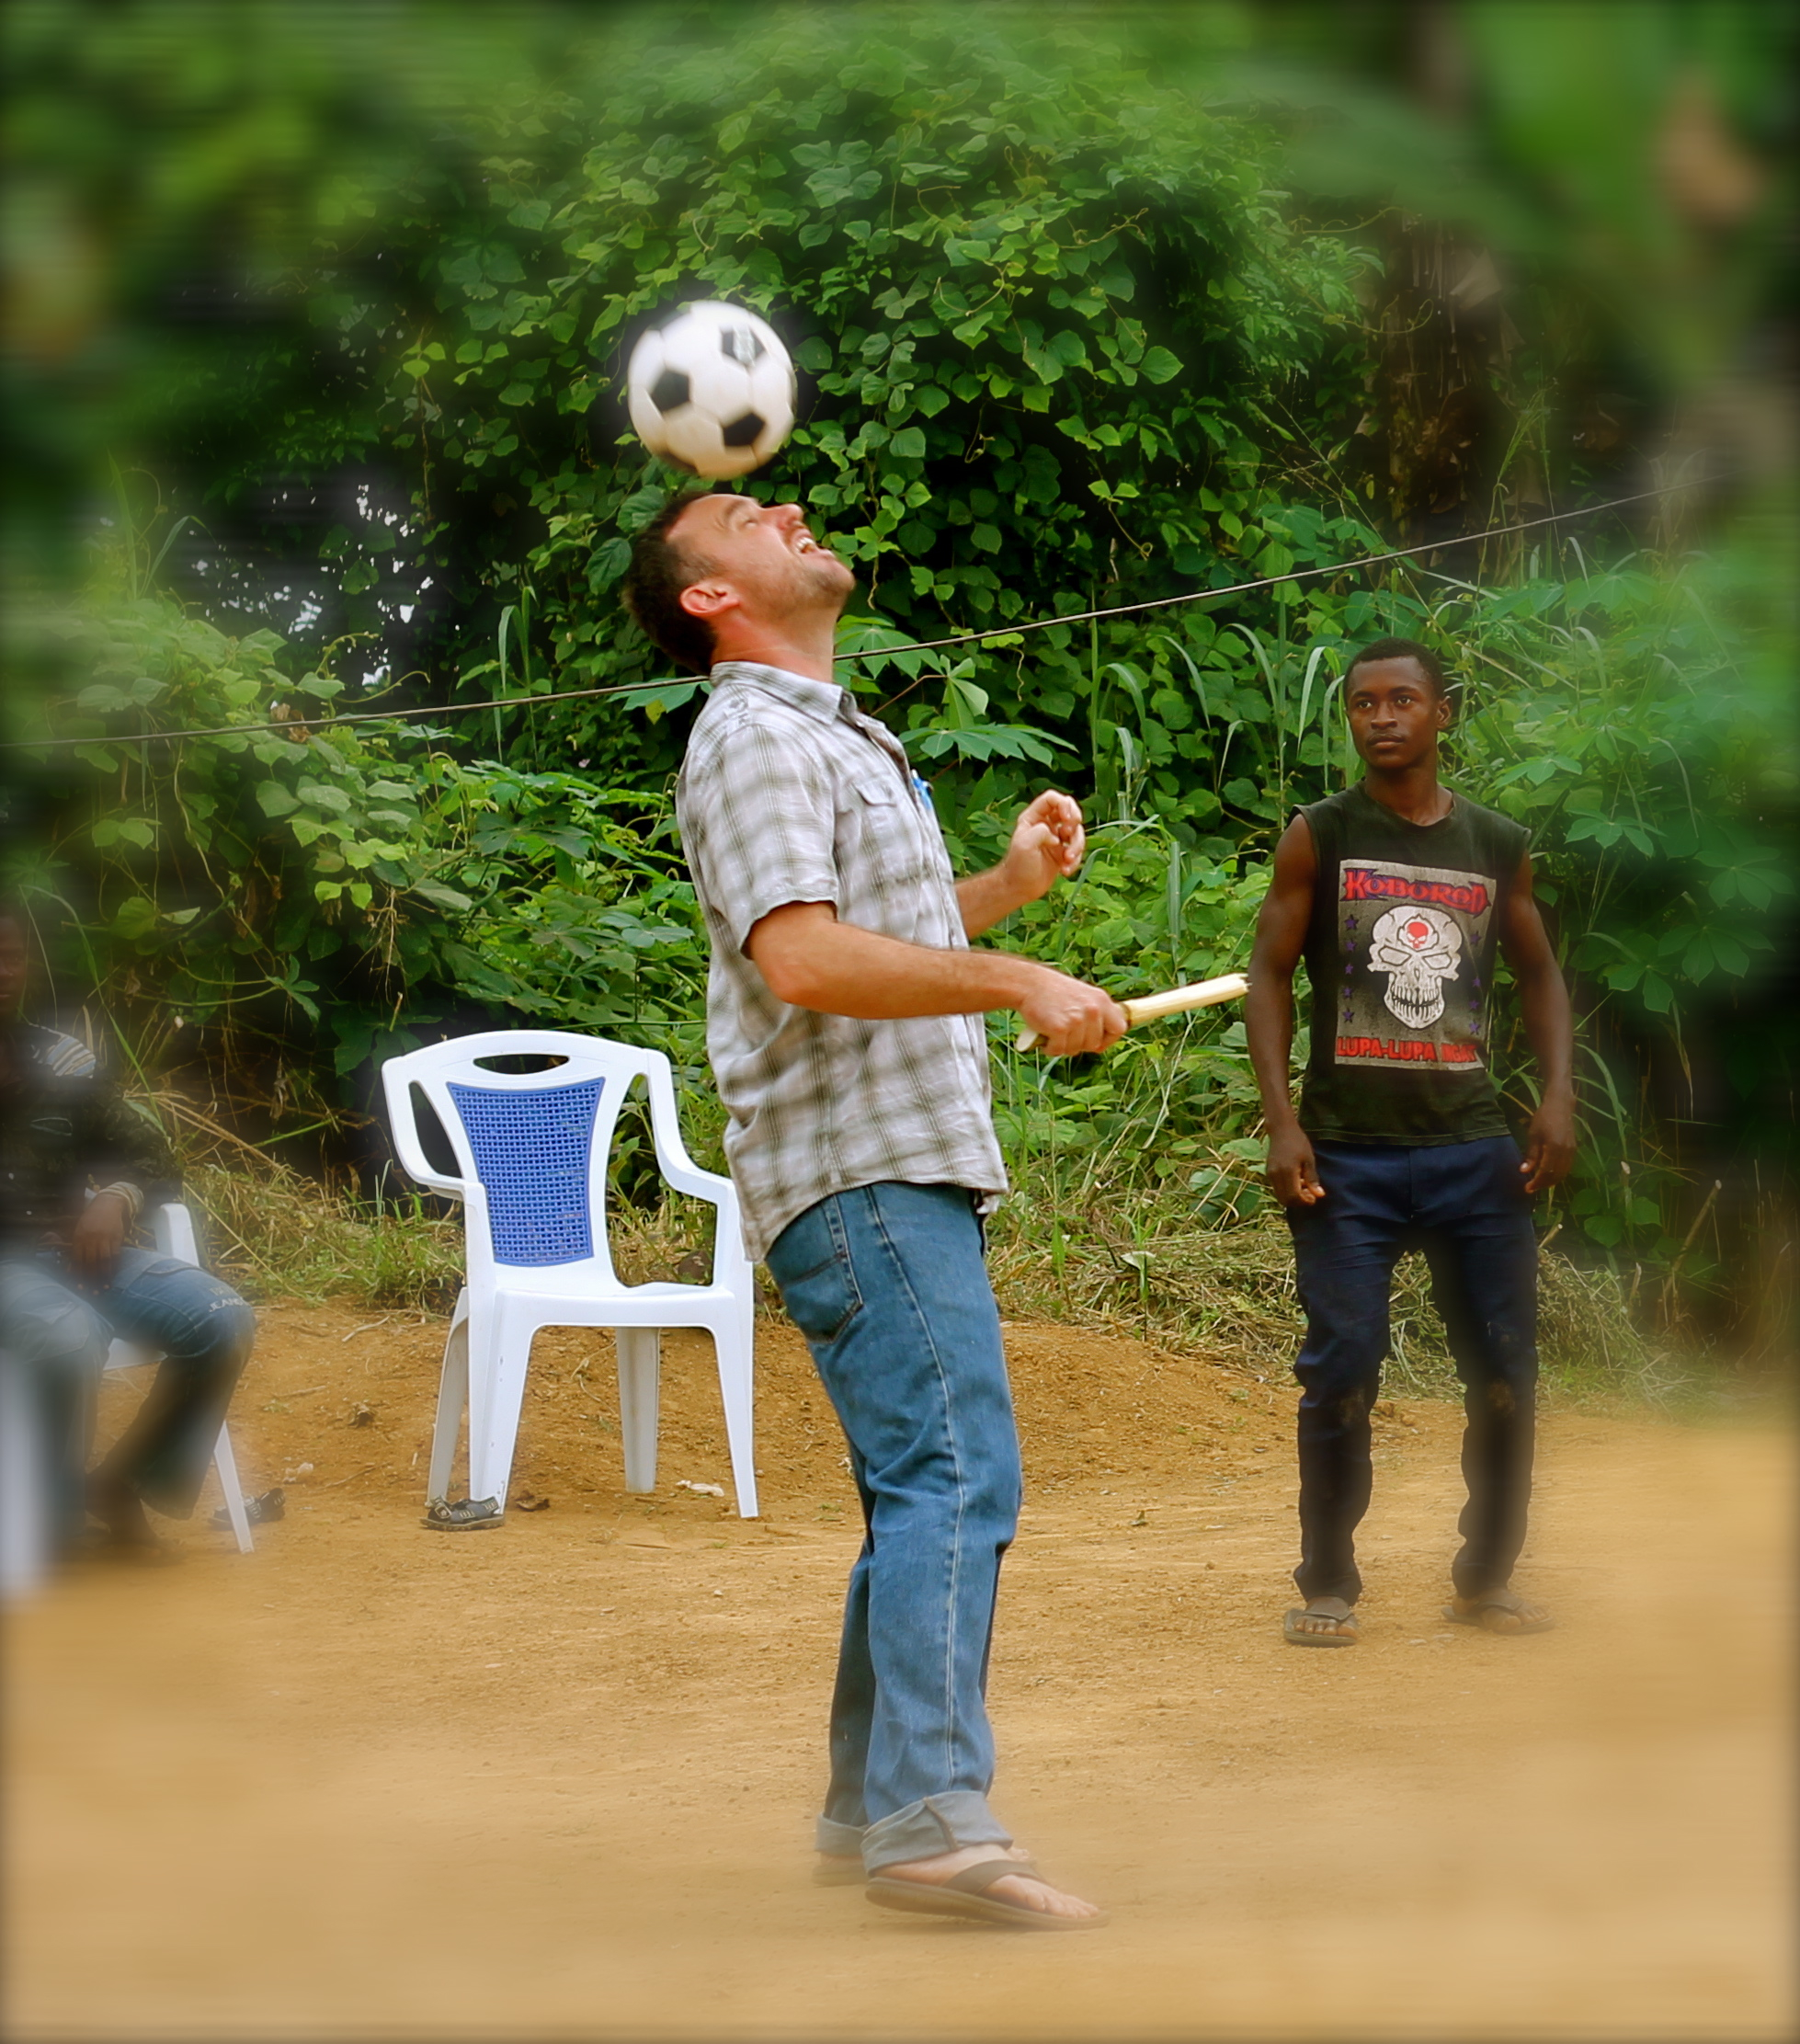 Tim playing soccer in village